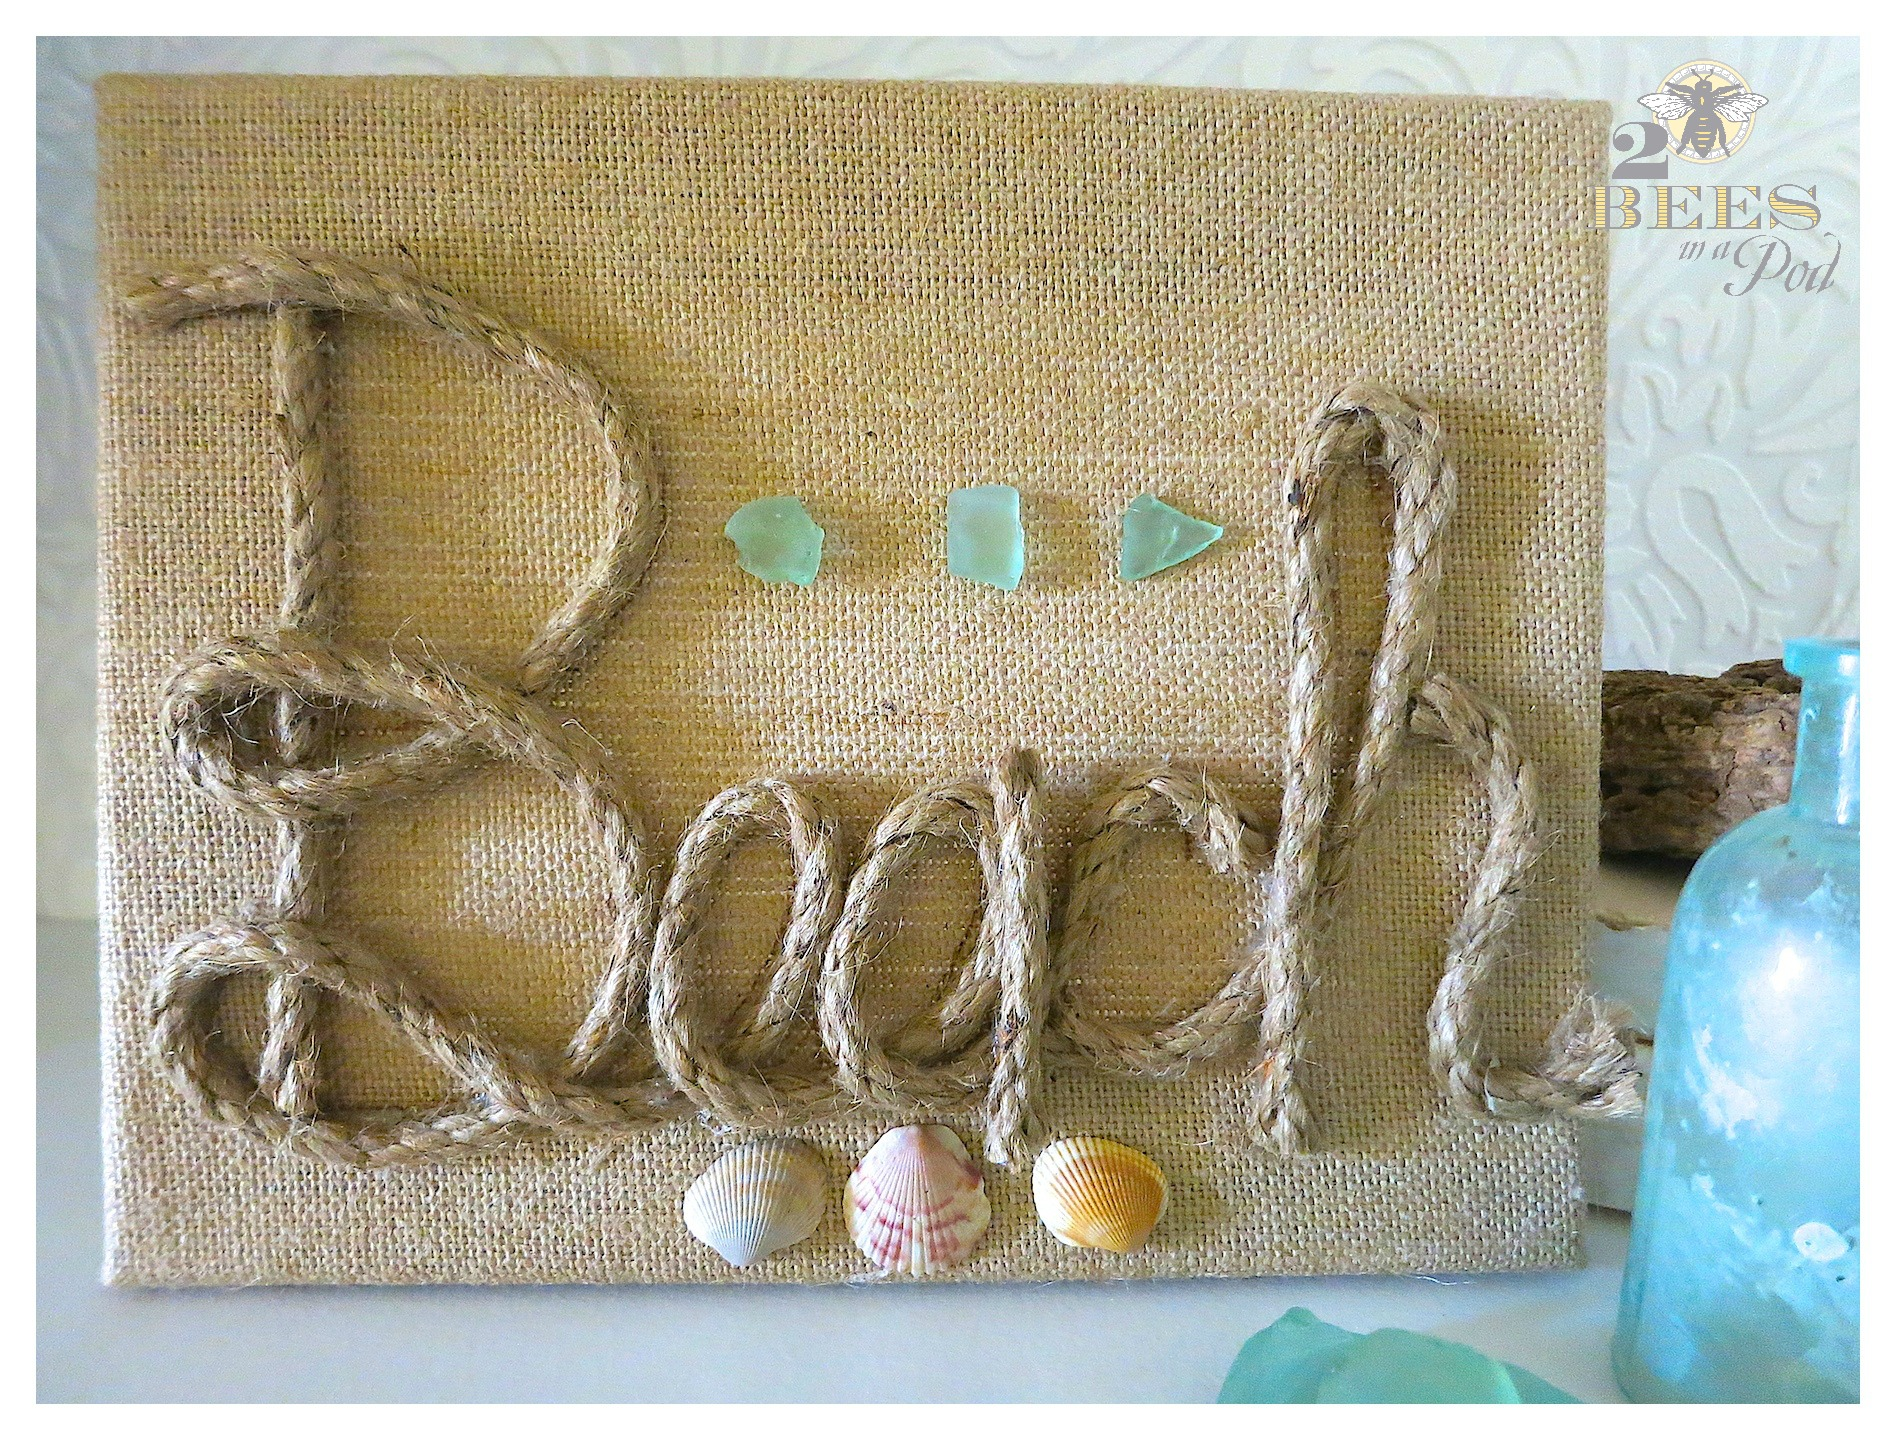 """DIY Burlap Canvas Beach Art. Super simple artwork - add jute or rope to spell out """"Beach"""" and embellish with shells and sea glass!"""